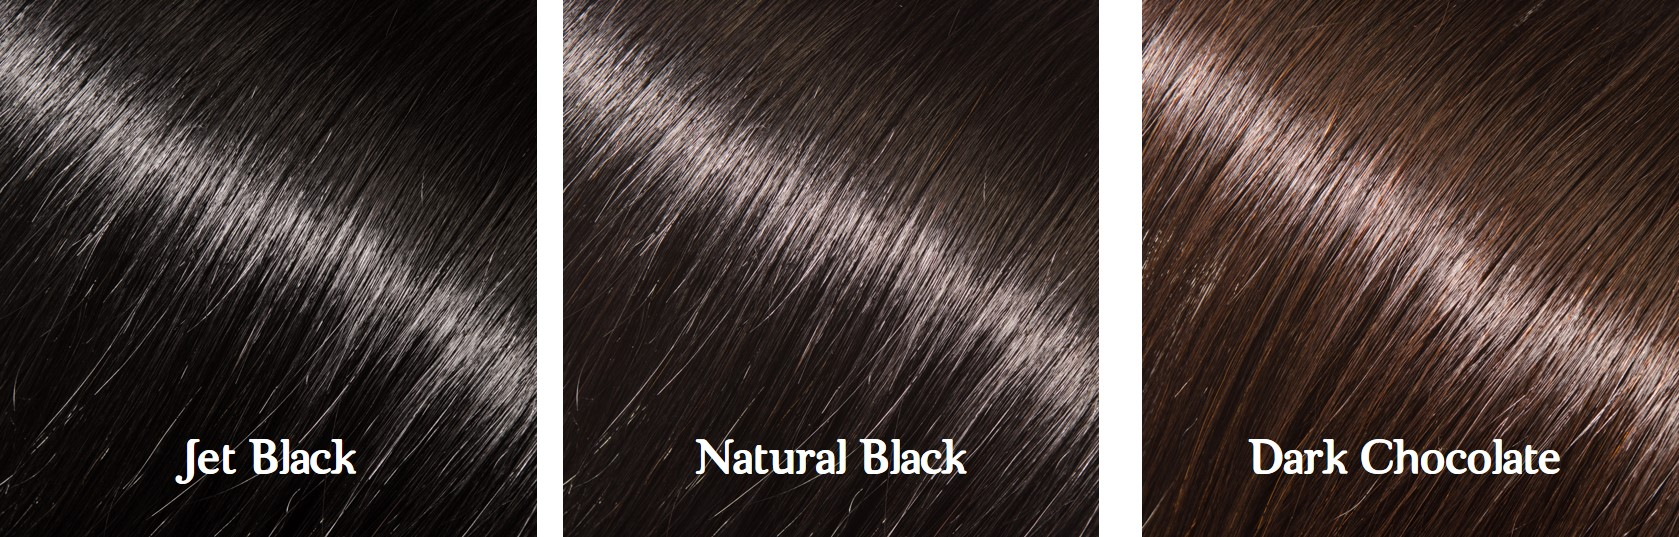 Color chart argia hair its long lasting resilient to heat and is the most natural looking hair in the world it also happens to take color nvjuhfo Choice Image